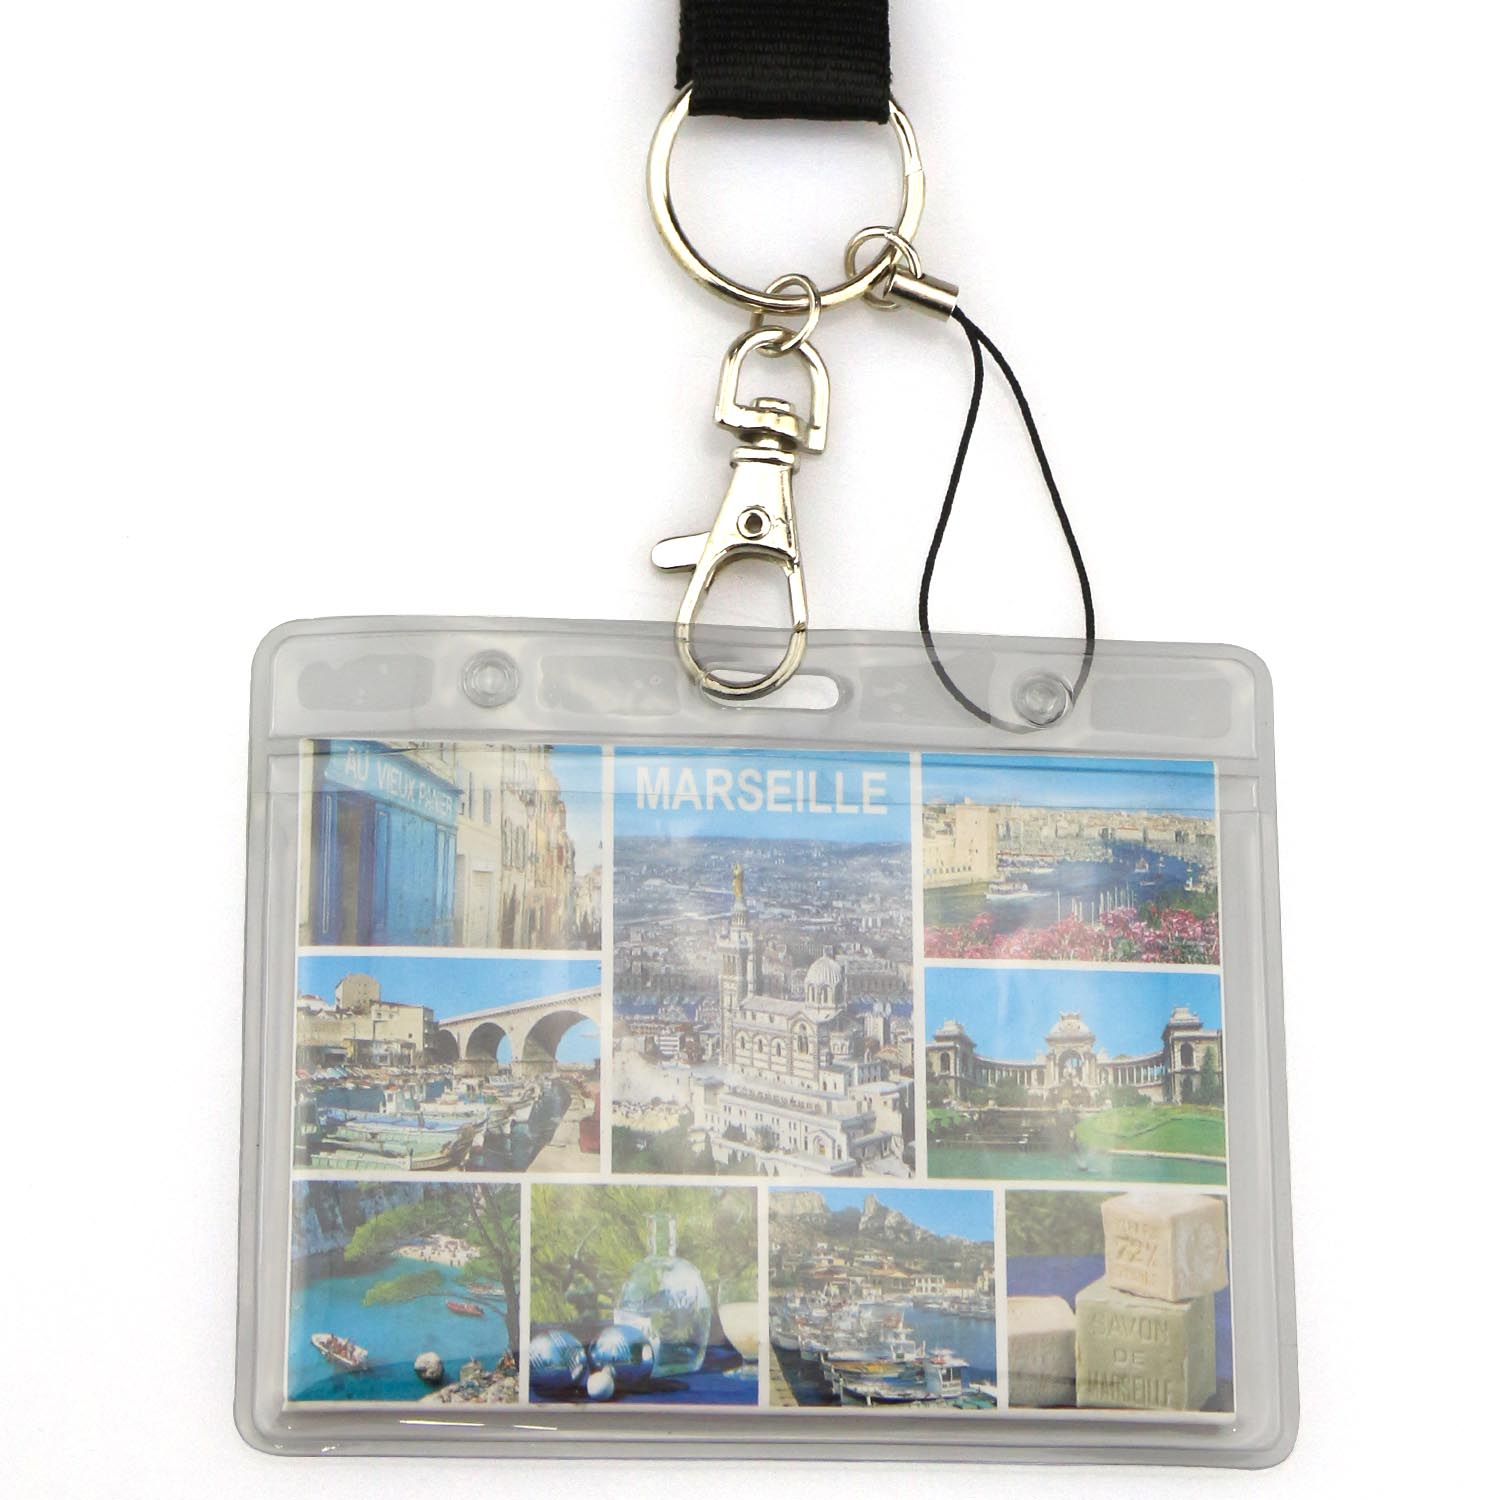 Custom soft plastic id name pvc card holder with lanyard